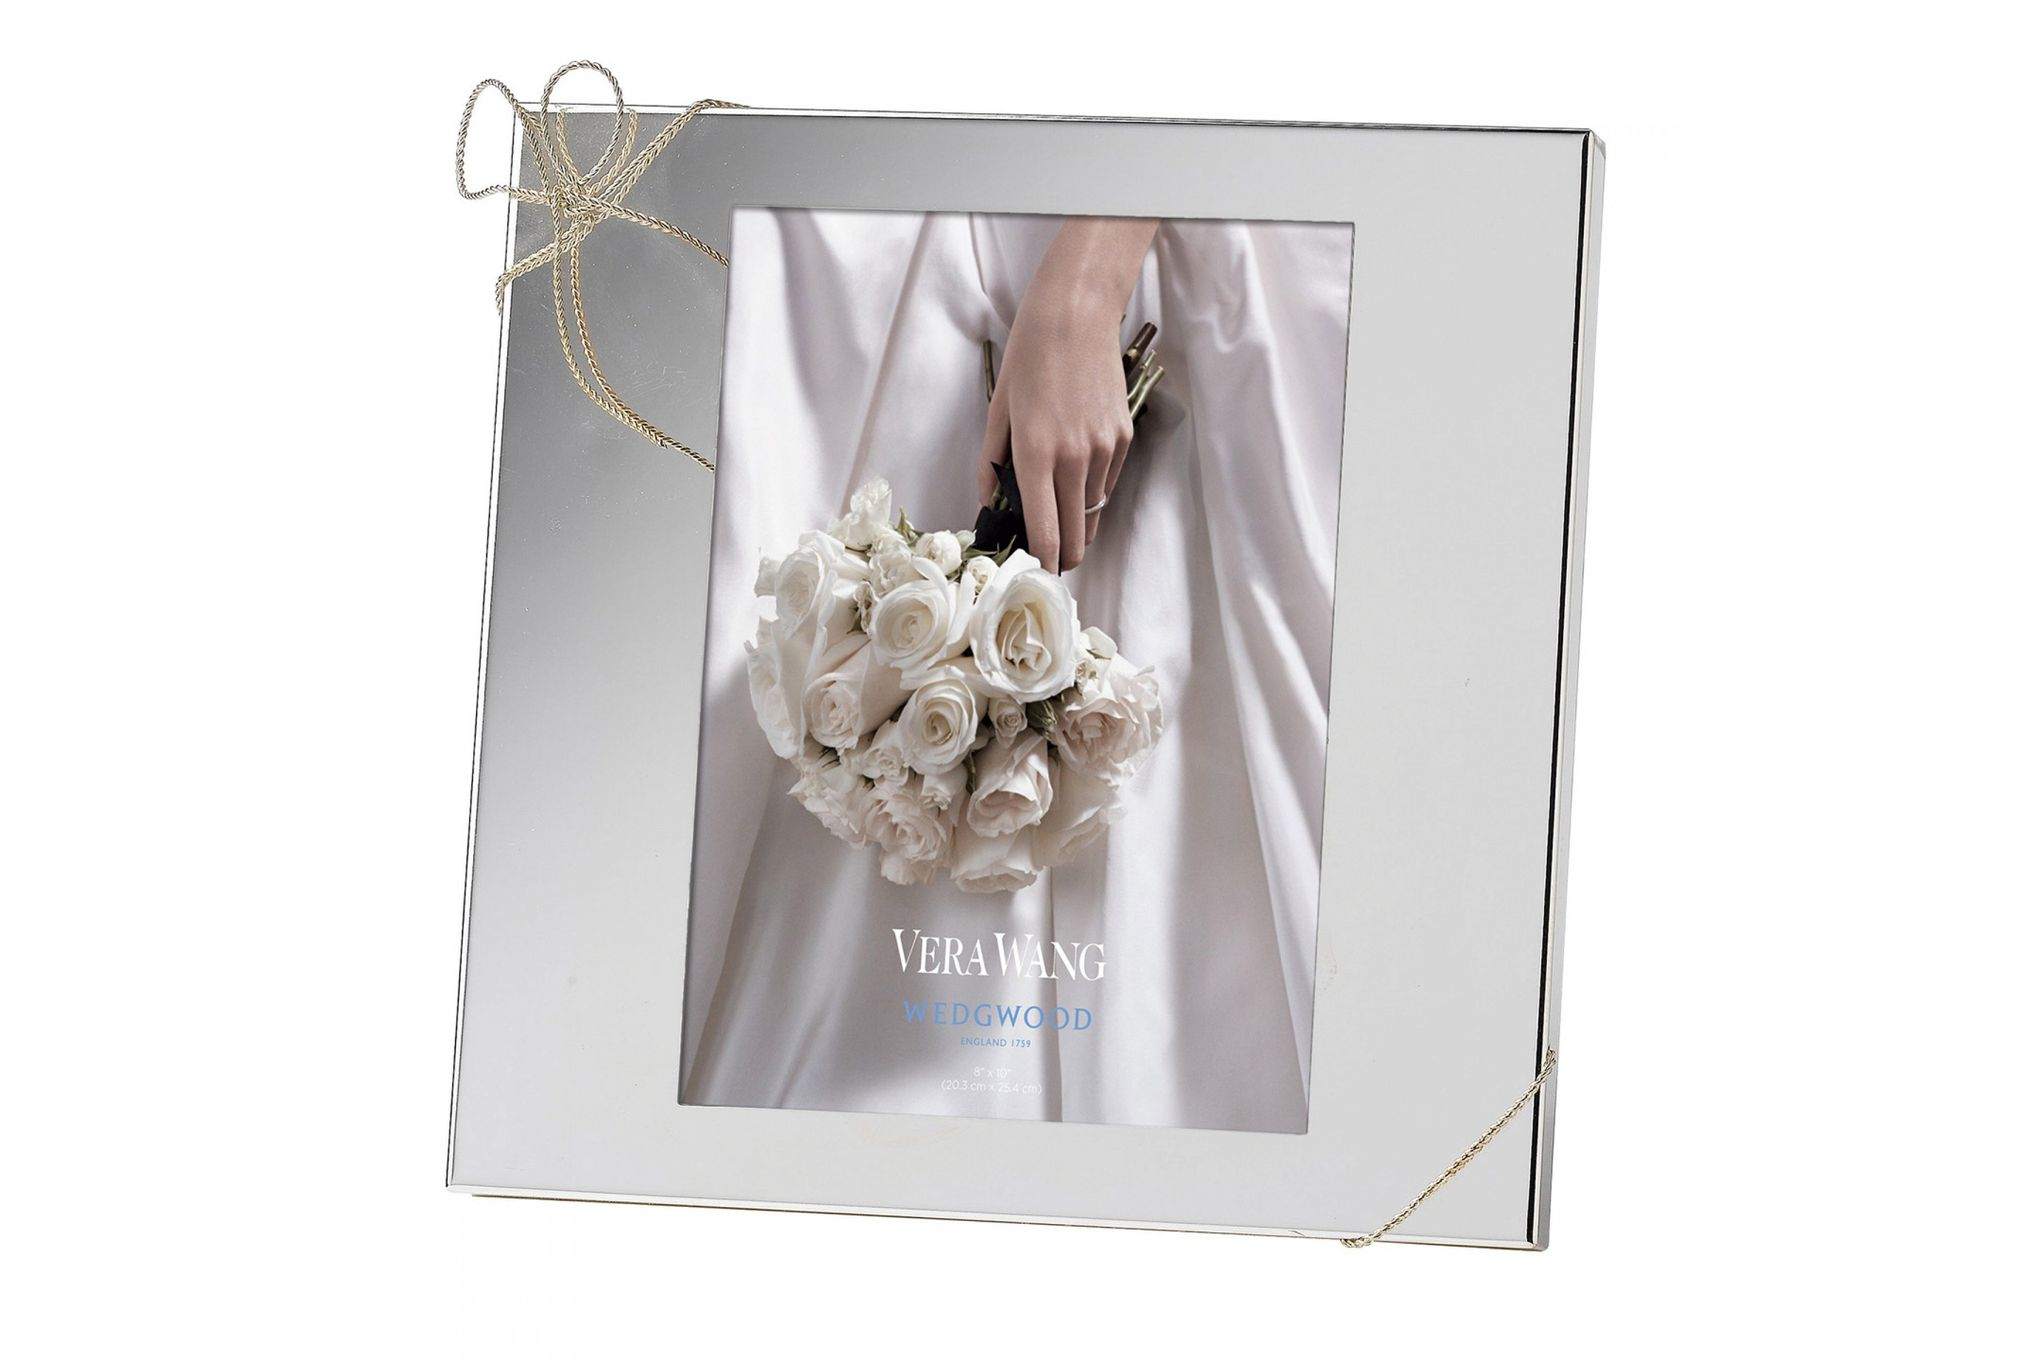 """Vera Wang for Wedgwood Gifts & Accessories Photo Frame Love Knots 8 x 10"""" thumb 1"""